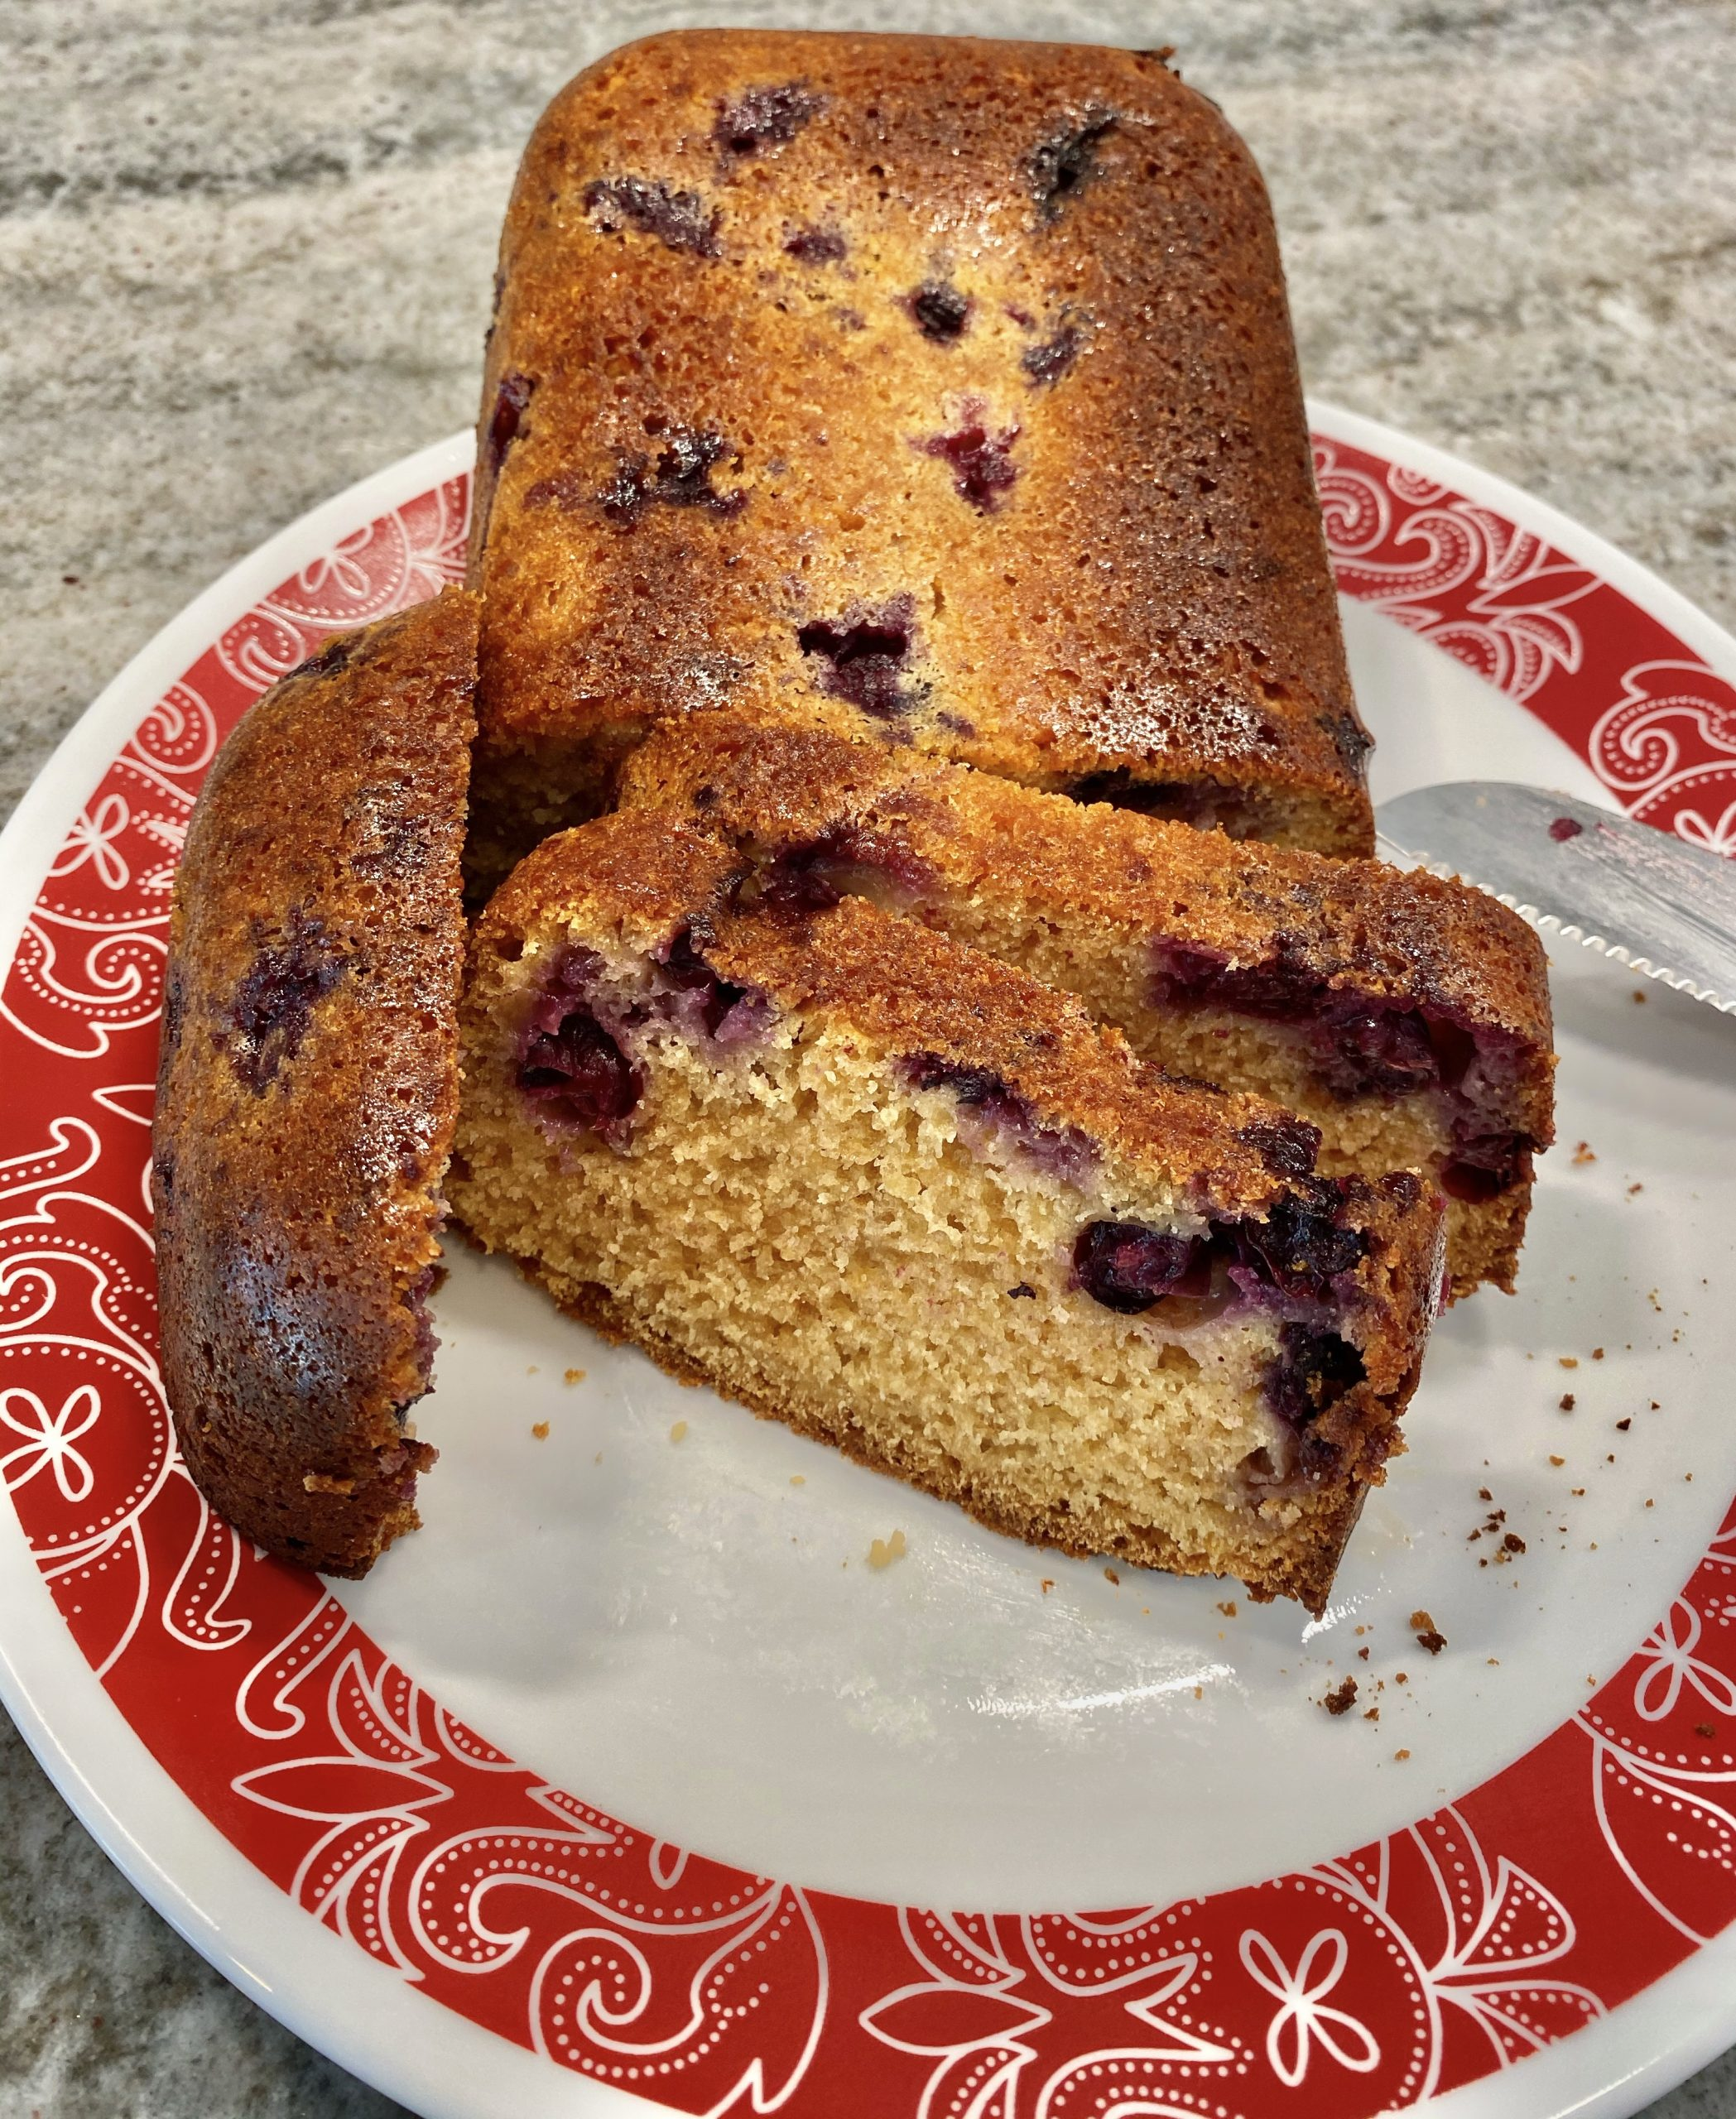 This Lemon Blueberry Cobbler /Cake is delish – Three Points Per Serving on Weight Watchers Blue and the recipe makes 12 slices! https://www.thestatenislandfamily.com/lemon-blueberry-cobbler/